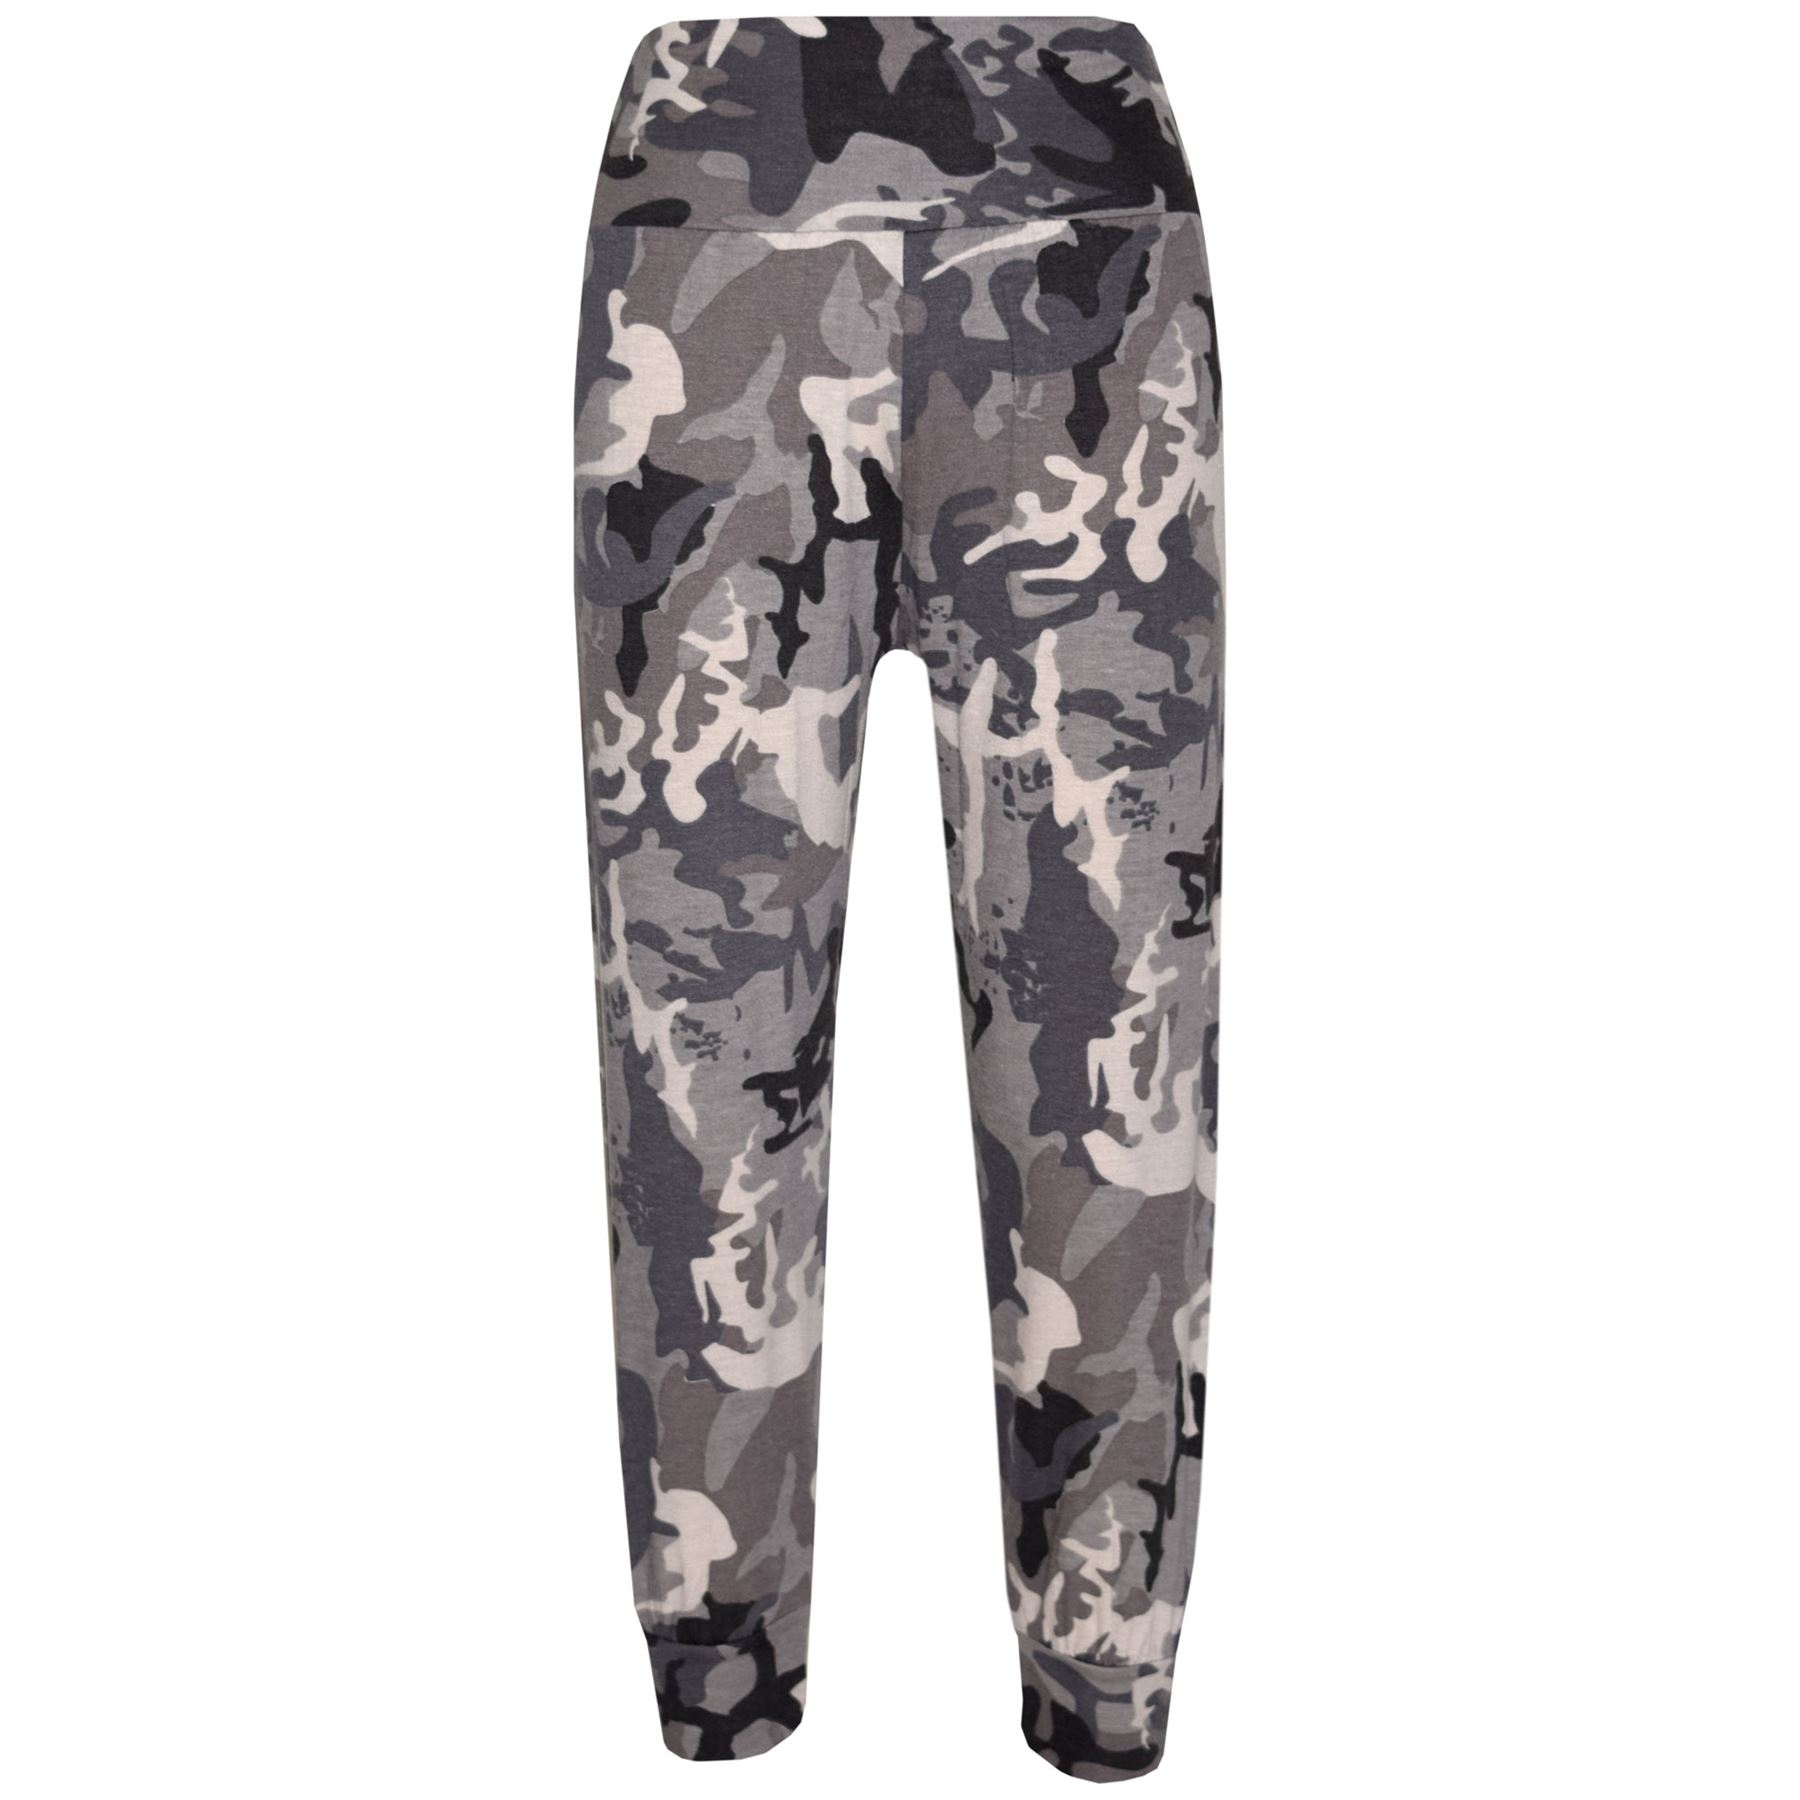 Kids-ali-baba-plain-color-modern-style-trousers-2-13-years thumbnail 10